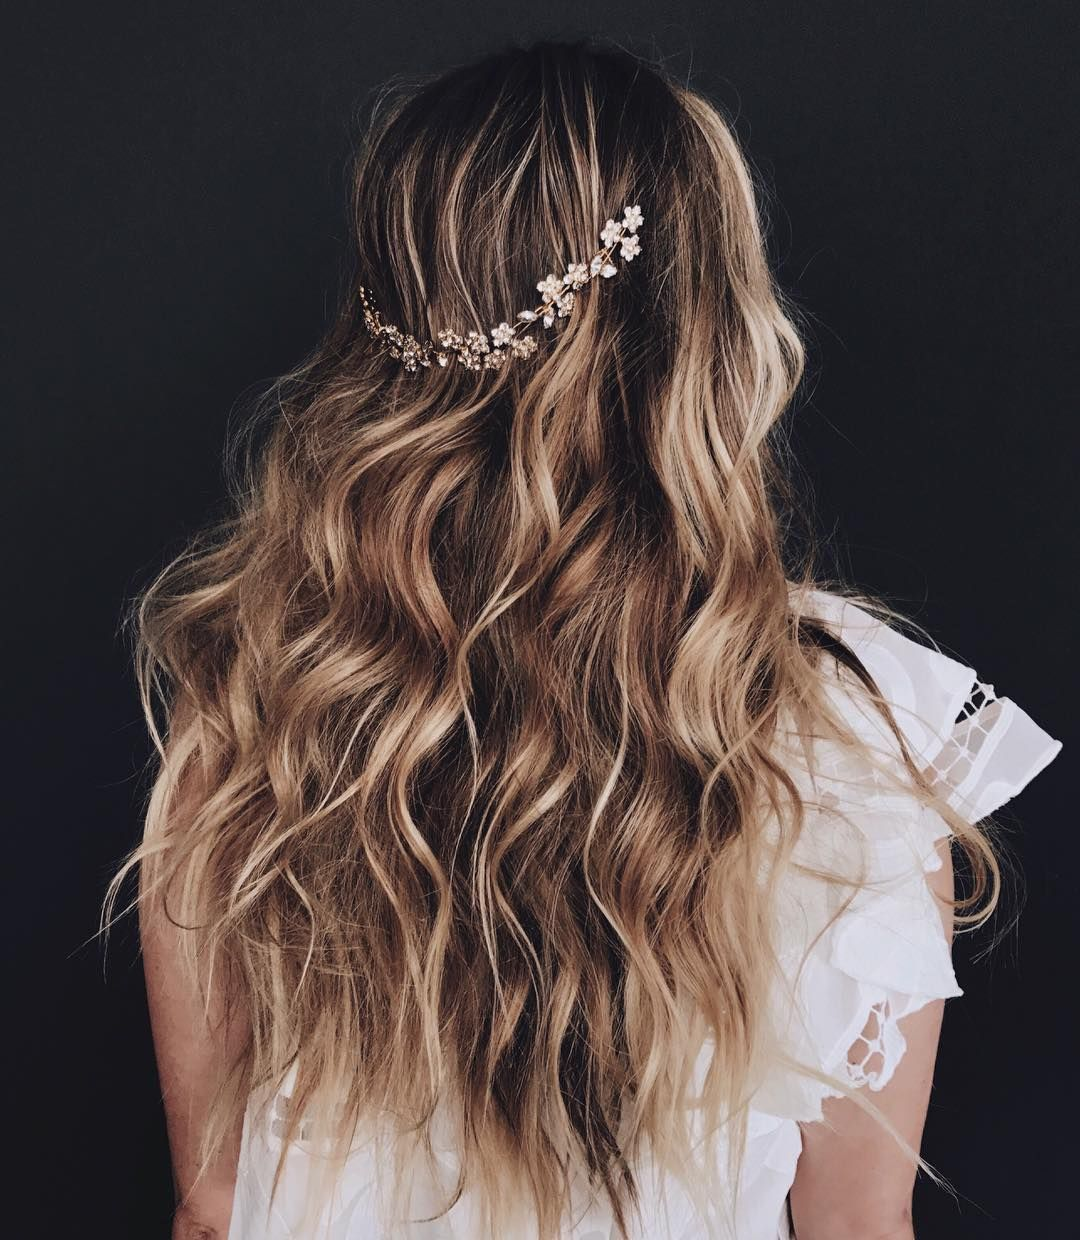 11 beautiful ways to wear bridal hair accessories in 2019